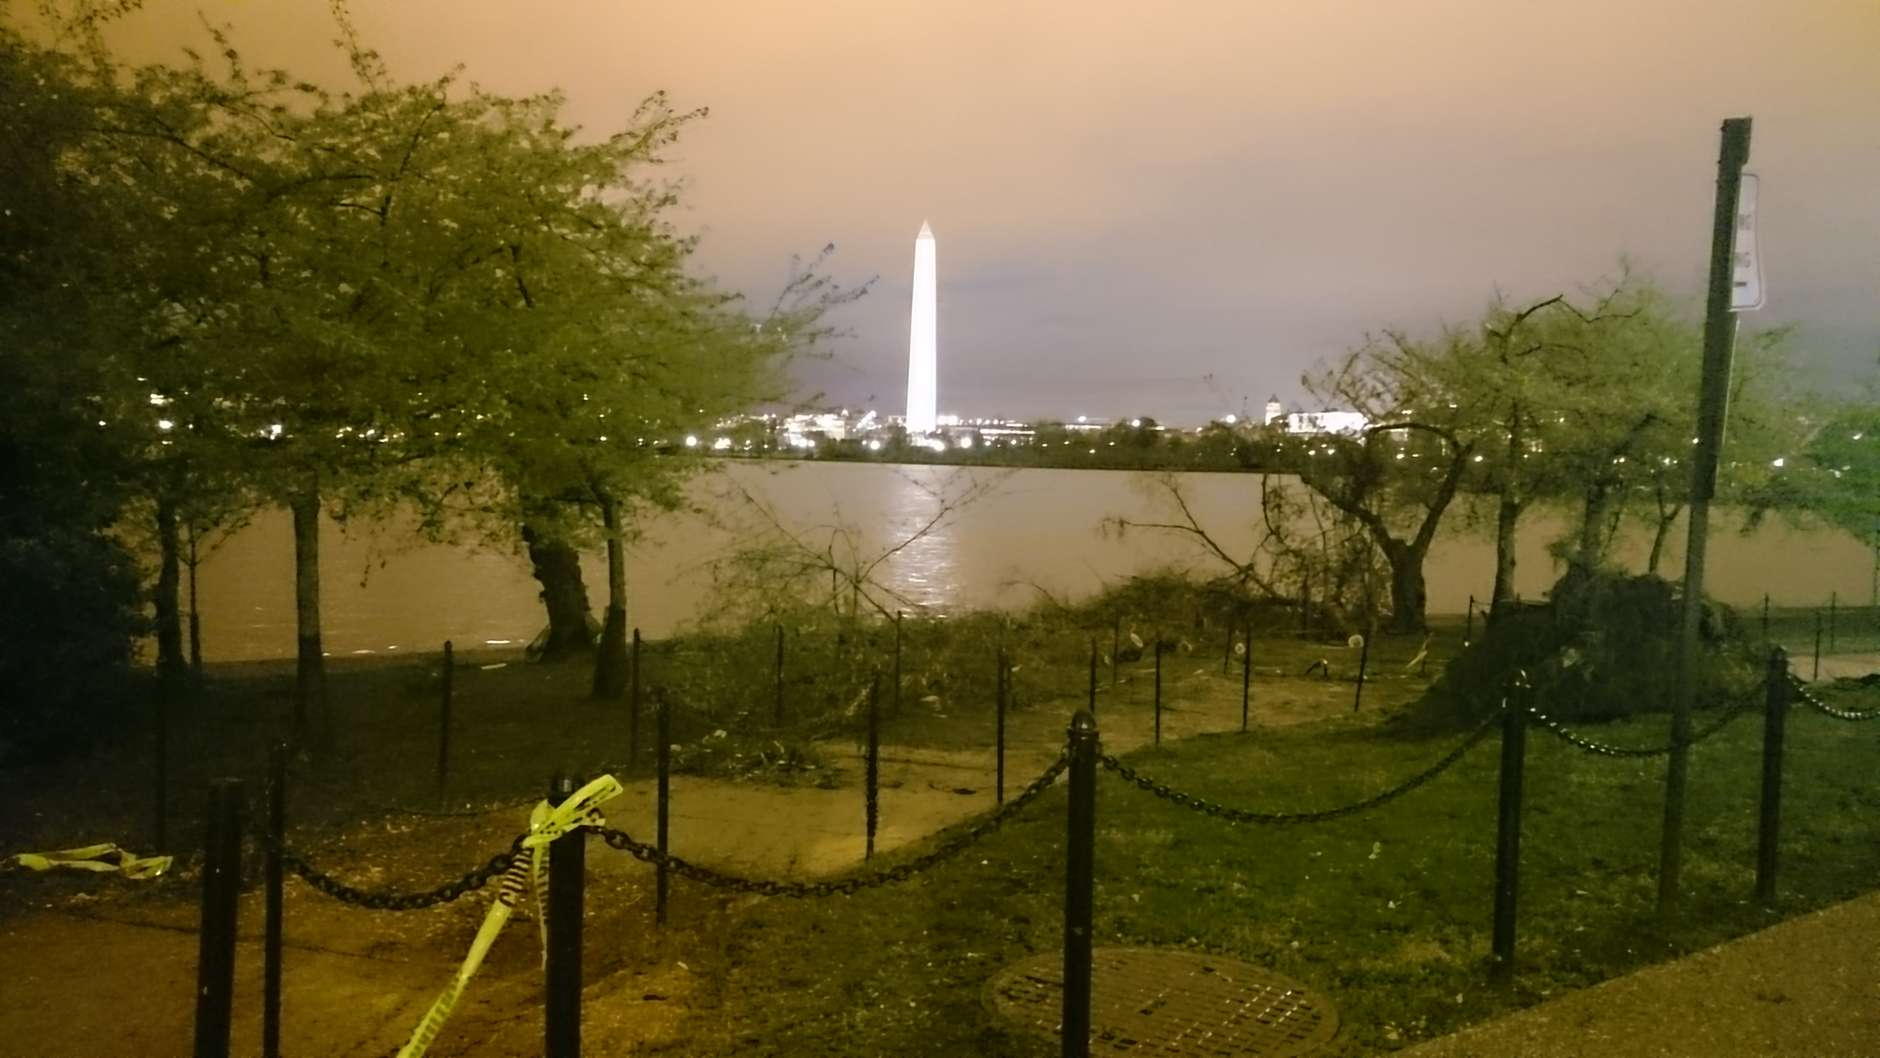 Cleanup remains underway at the Tidal Basin following Thursday's fierce weather. (WTOP/Dennis Foley)